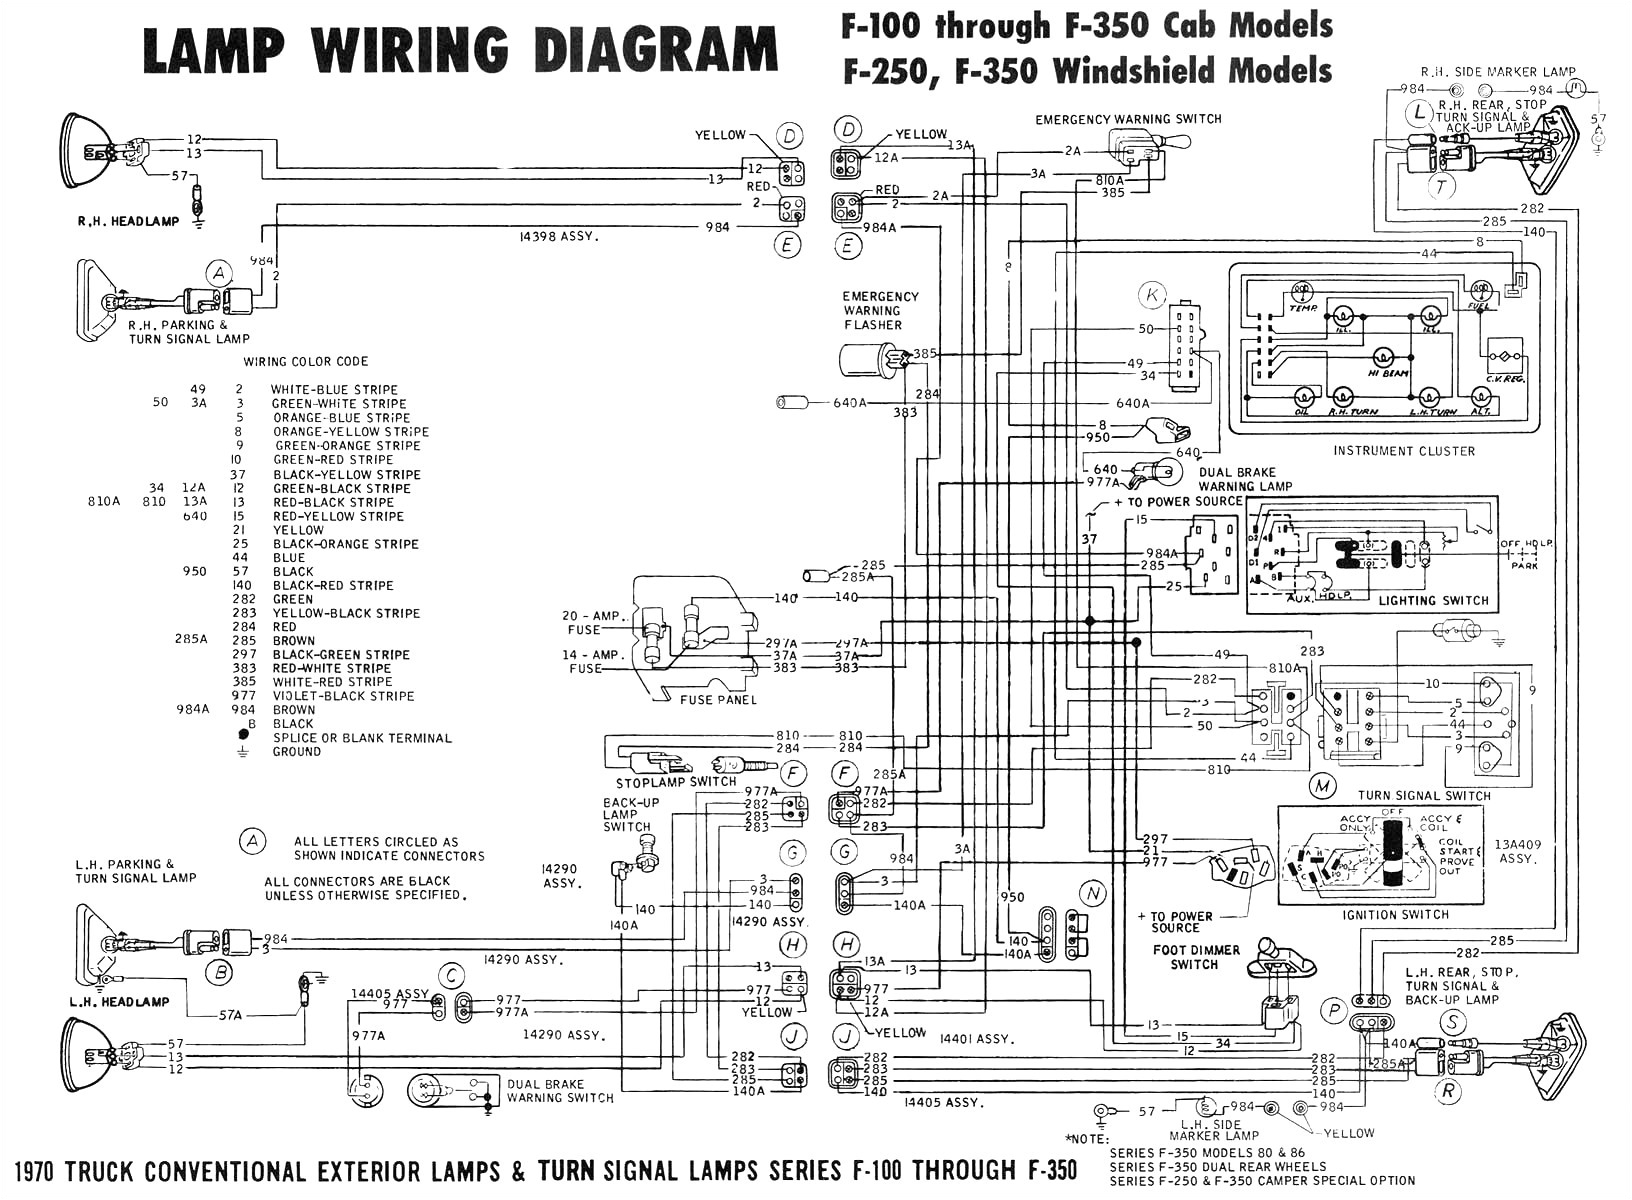 Ford Jubilee Tractor Wiring Diagram ford 7610 Wiring Diagram Blog Wiring Diagram